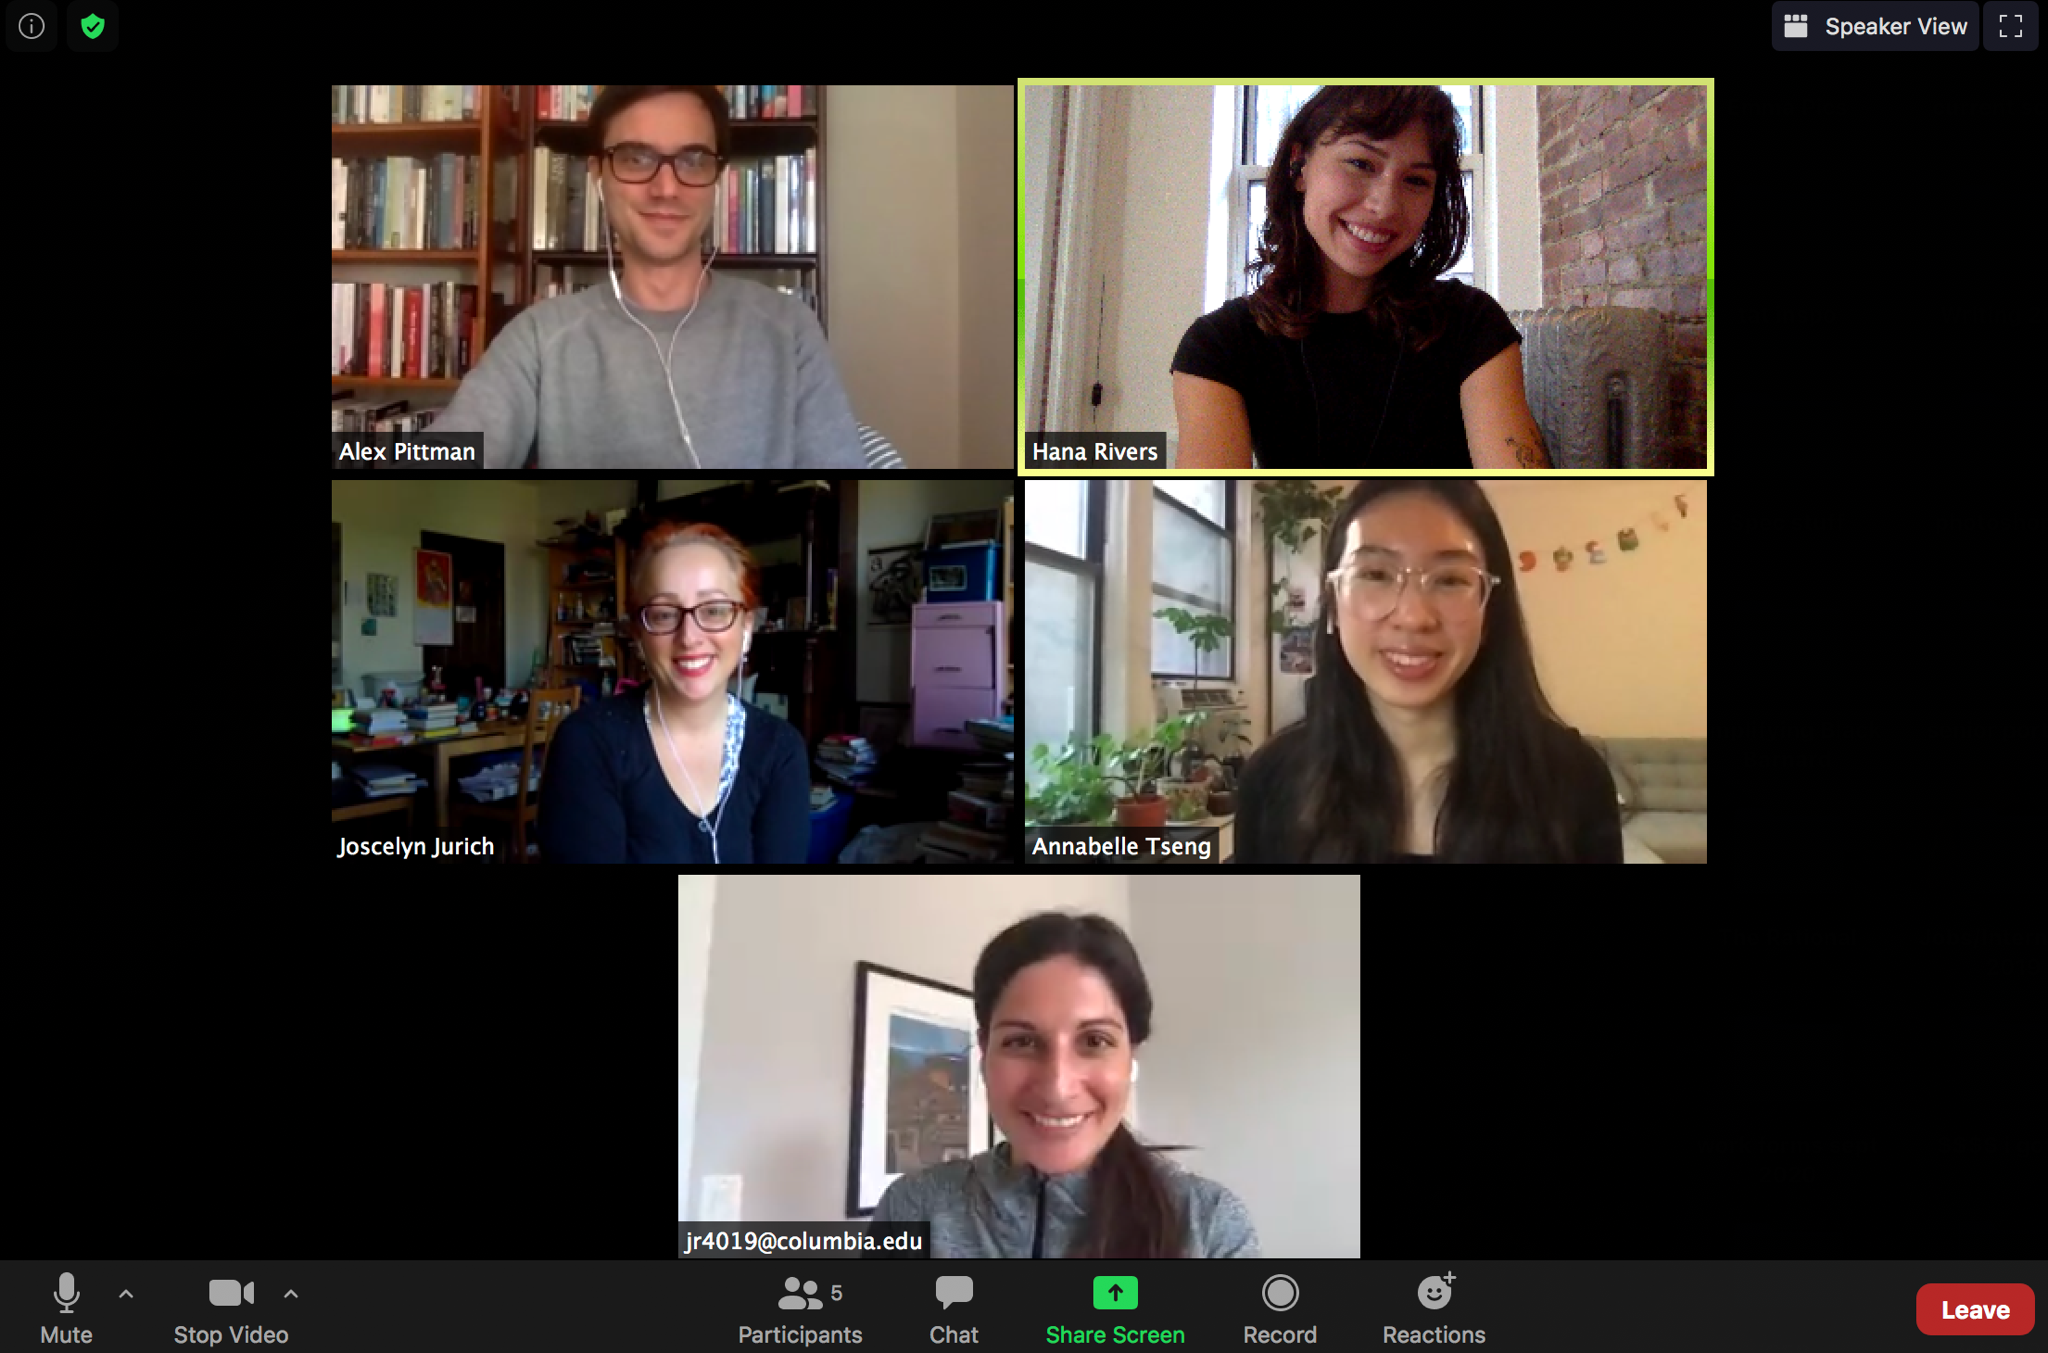 Zoom screenshot of the CEP team meeting during the pandemic